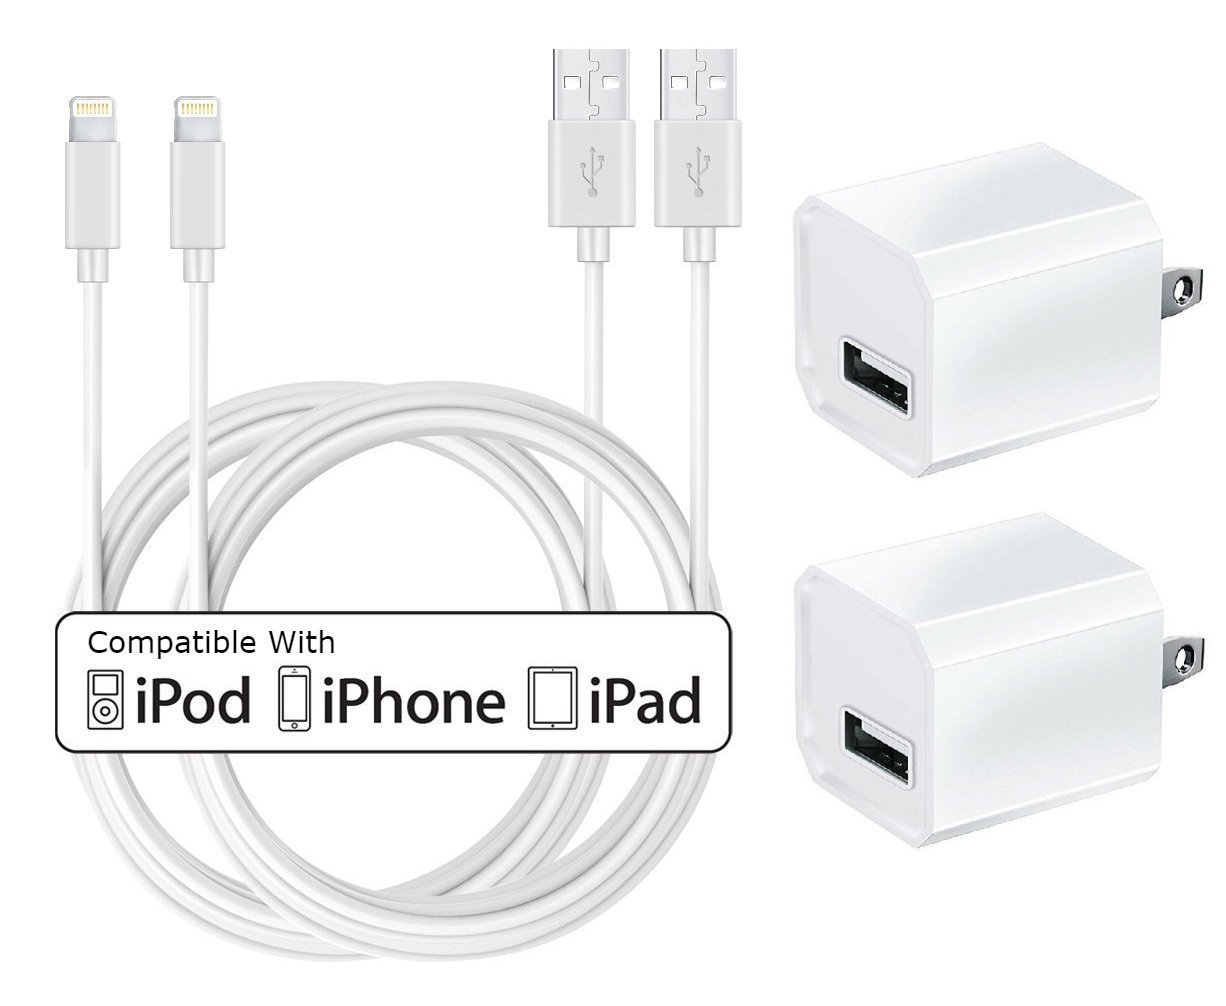 Charger, Certified TRICON 5W 1A USB Universal Portable Wall Power Adapter Mini Cube with 6 FEET/2M iPhone Charger Lightning to USB Charging Cable (2 Pack) White